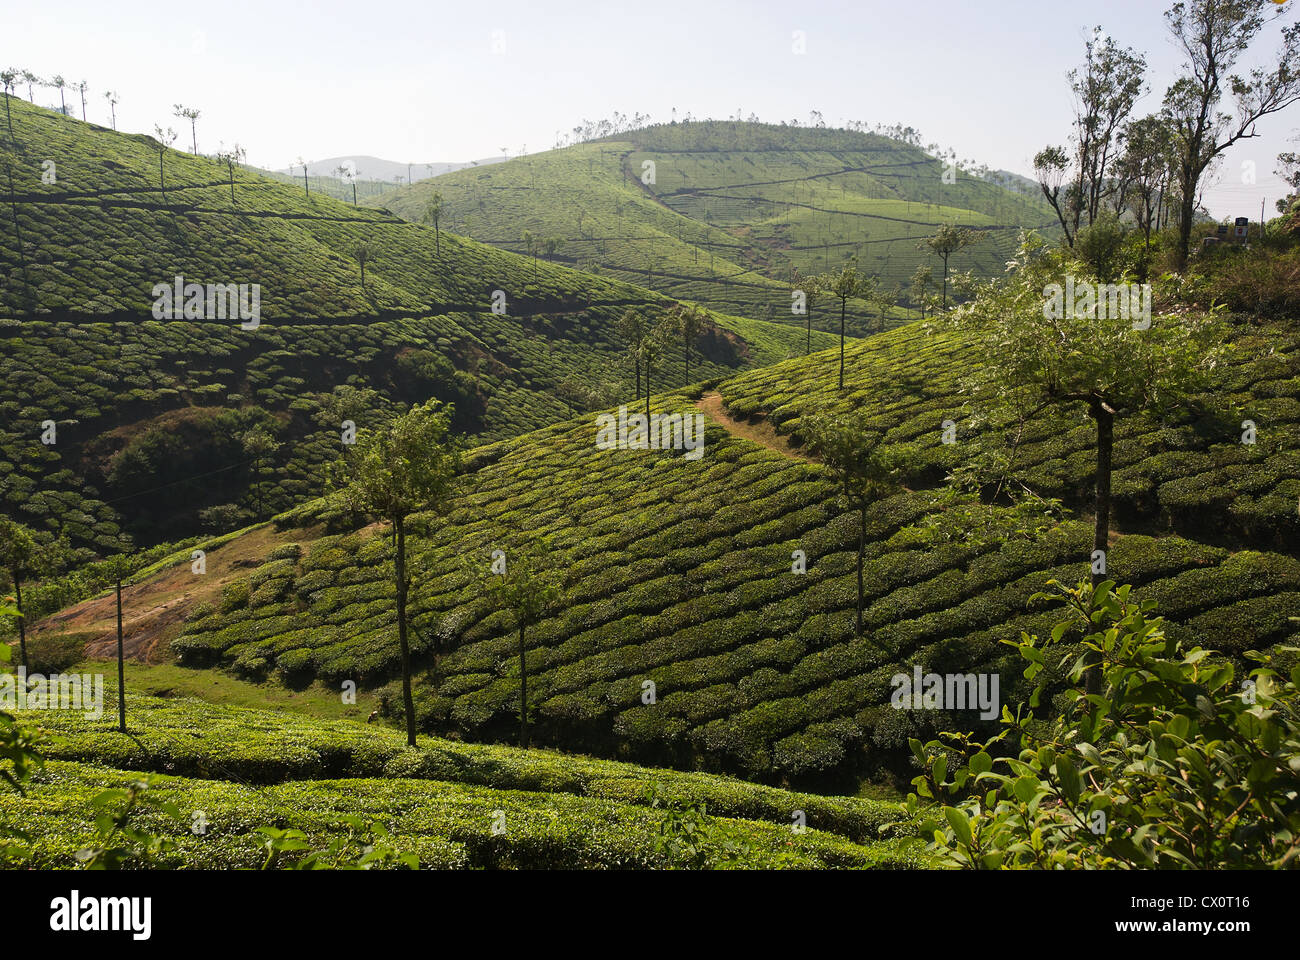 Elk201-3906 India, Kerala, Periyar, tea plantation - Stock Image